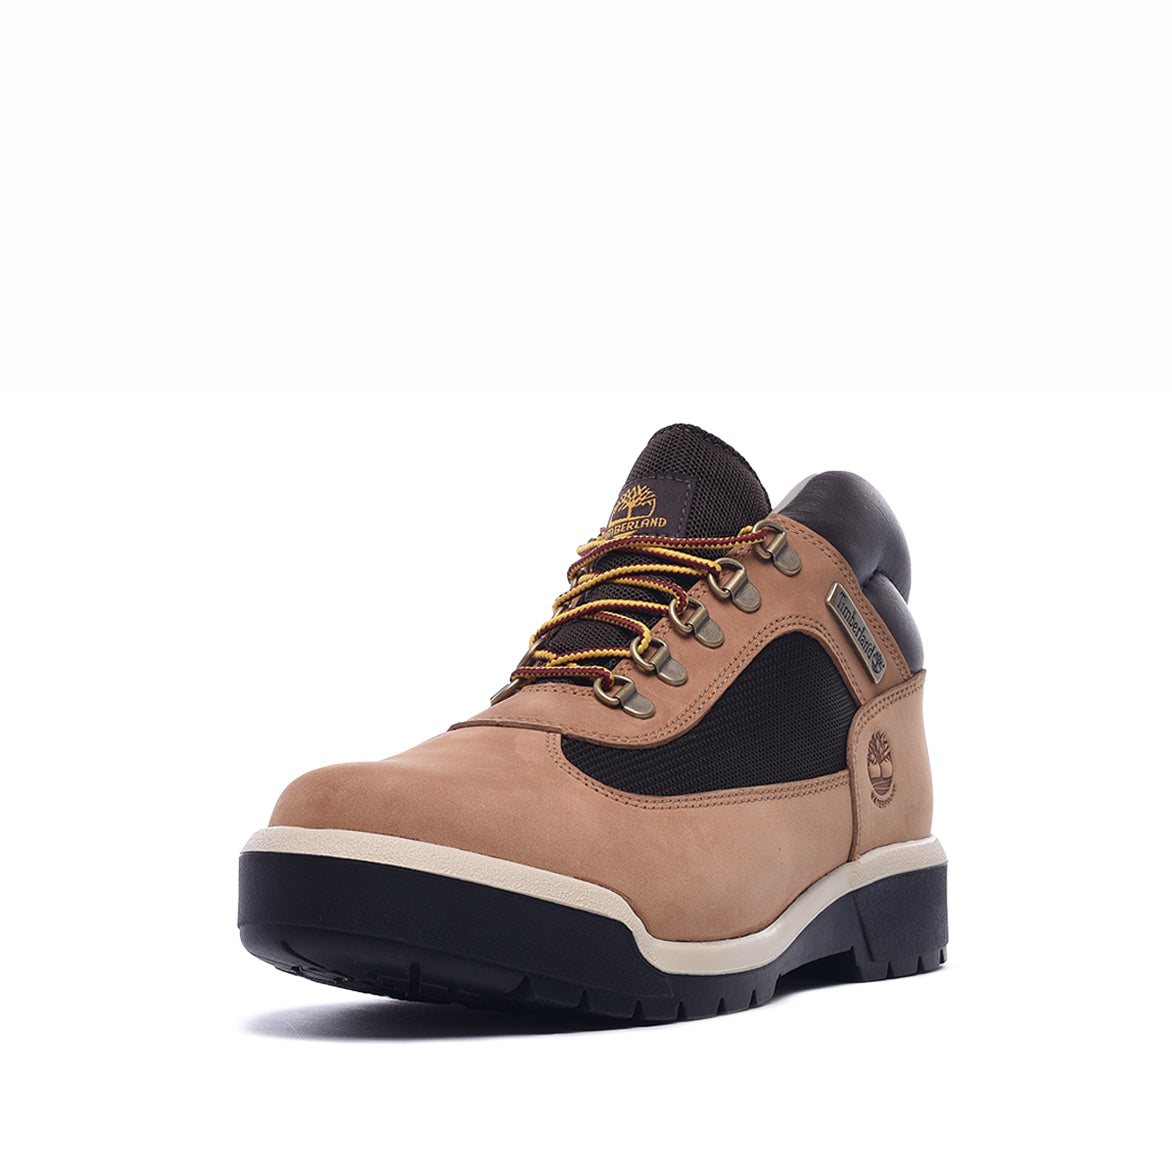 WATERPROOF FIELD BOOT (JUNIOR) - MEDIUM BEIGE NUBUCK